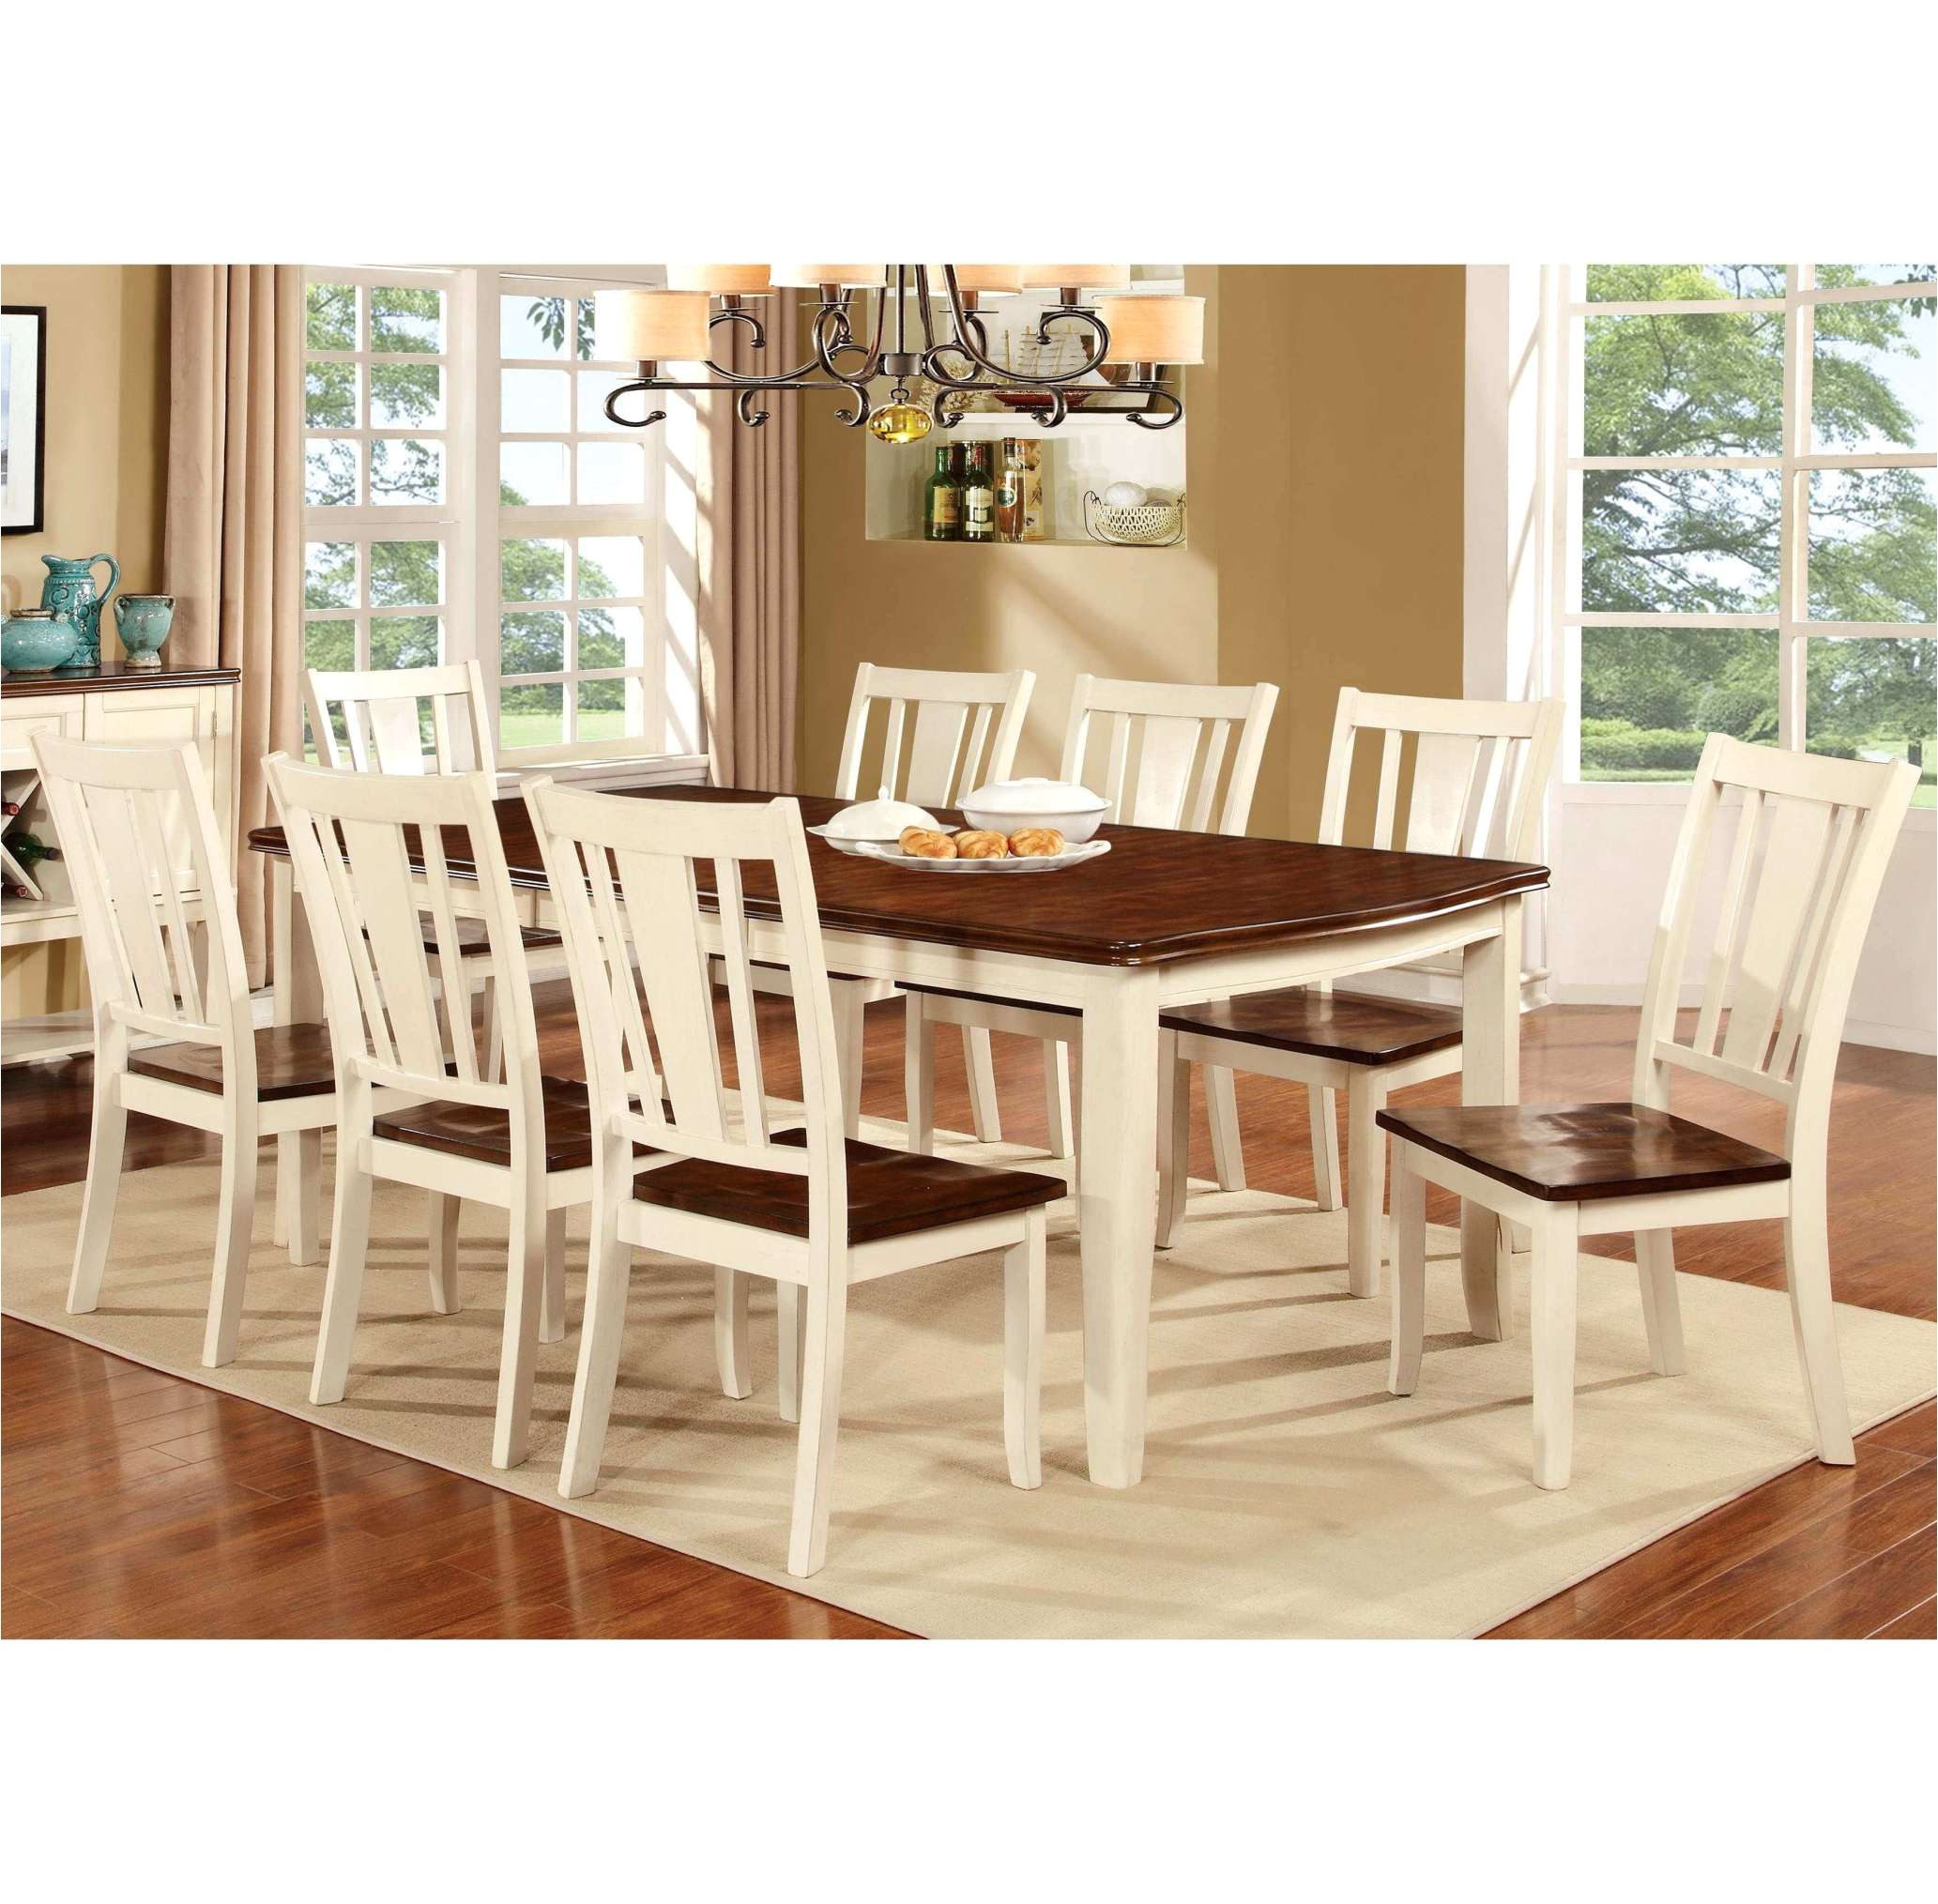 big dining room tables plus elegant big lots patio furniture garden ideas